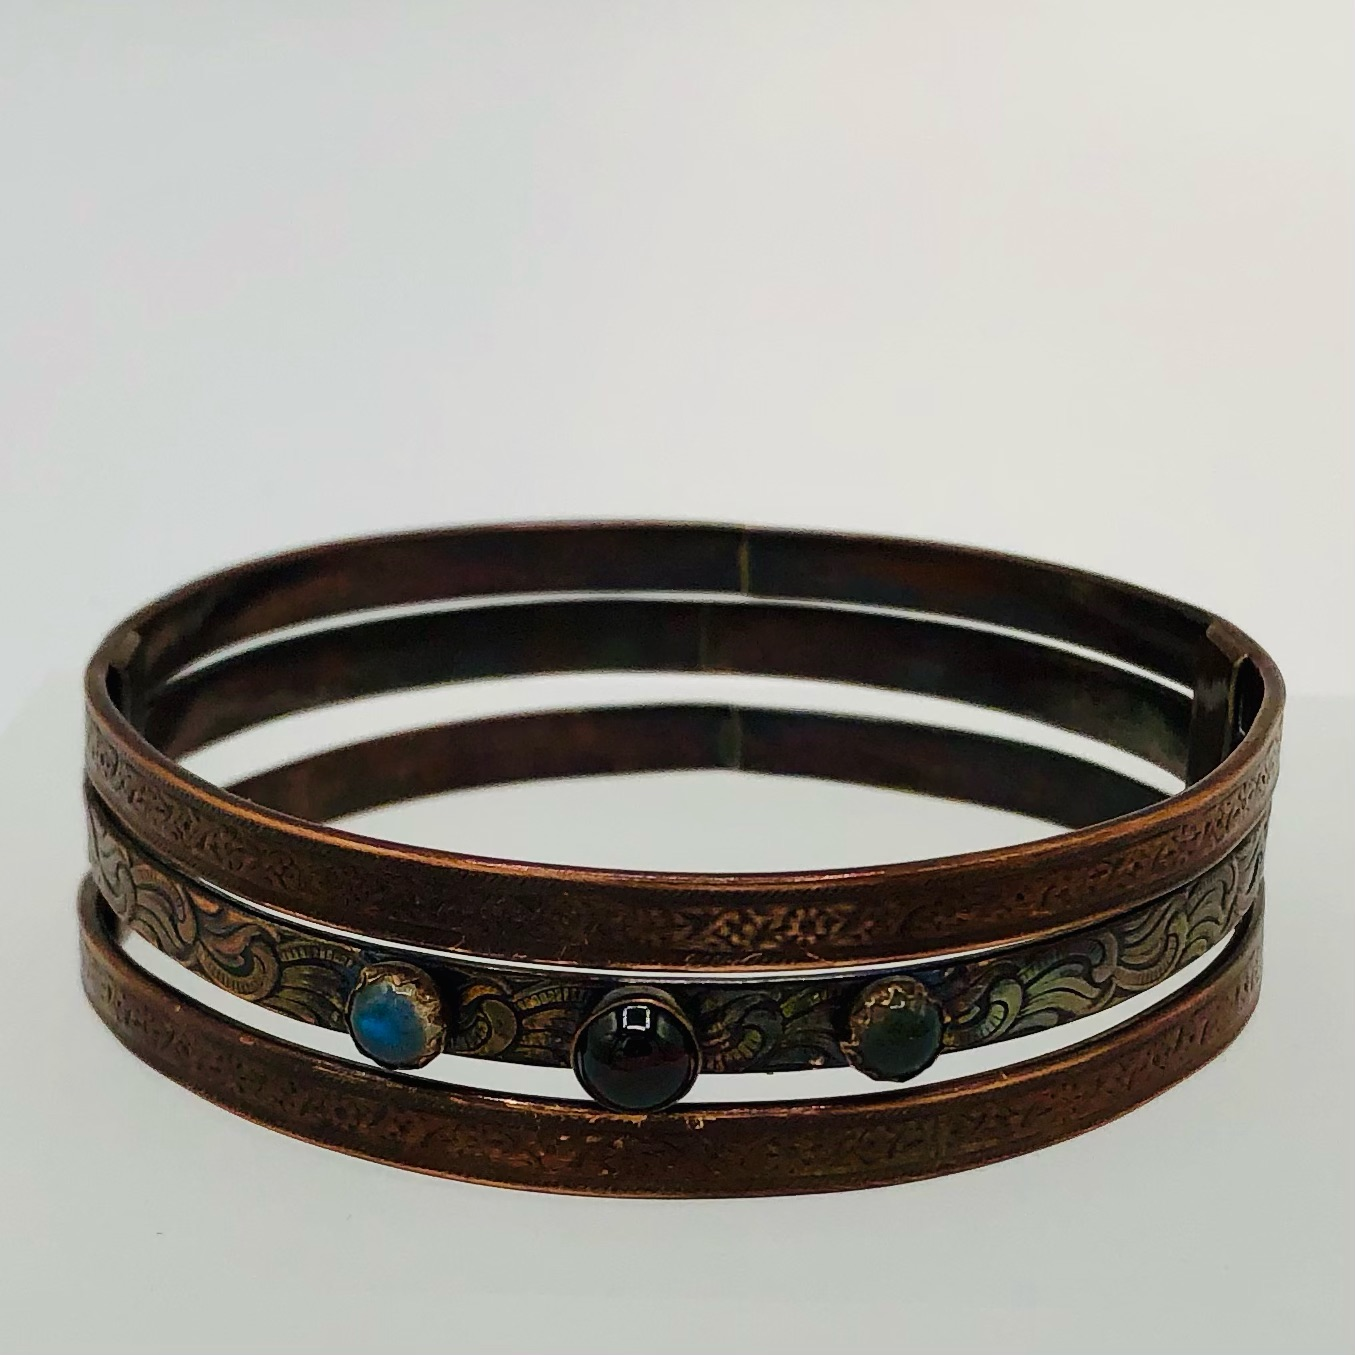 SPINNER BANGLE- copper with garnet and labradorite cabochons 70-